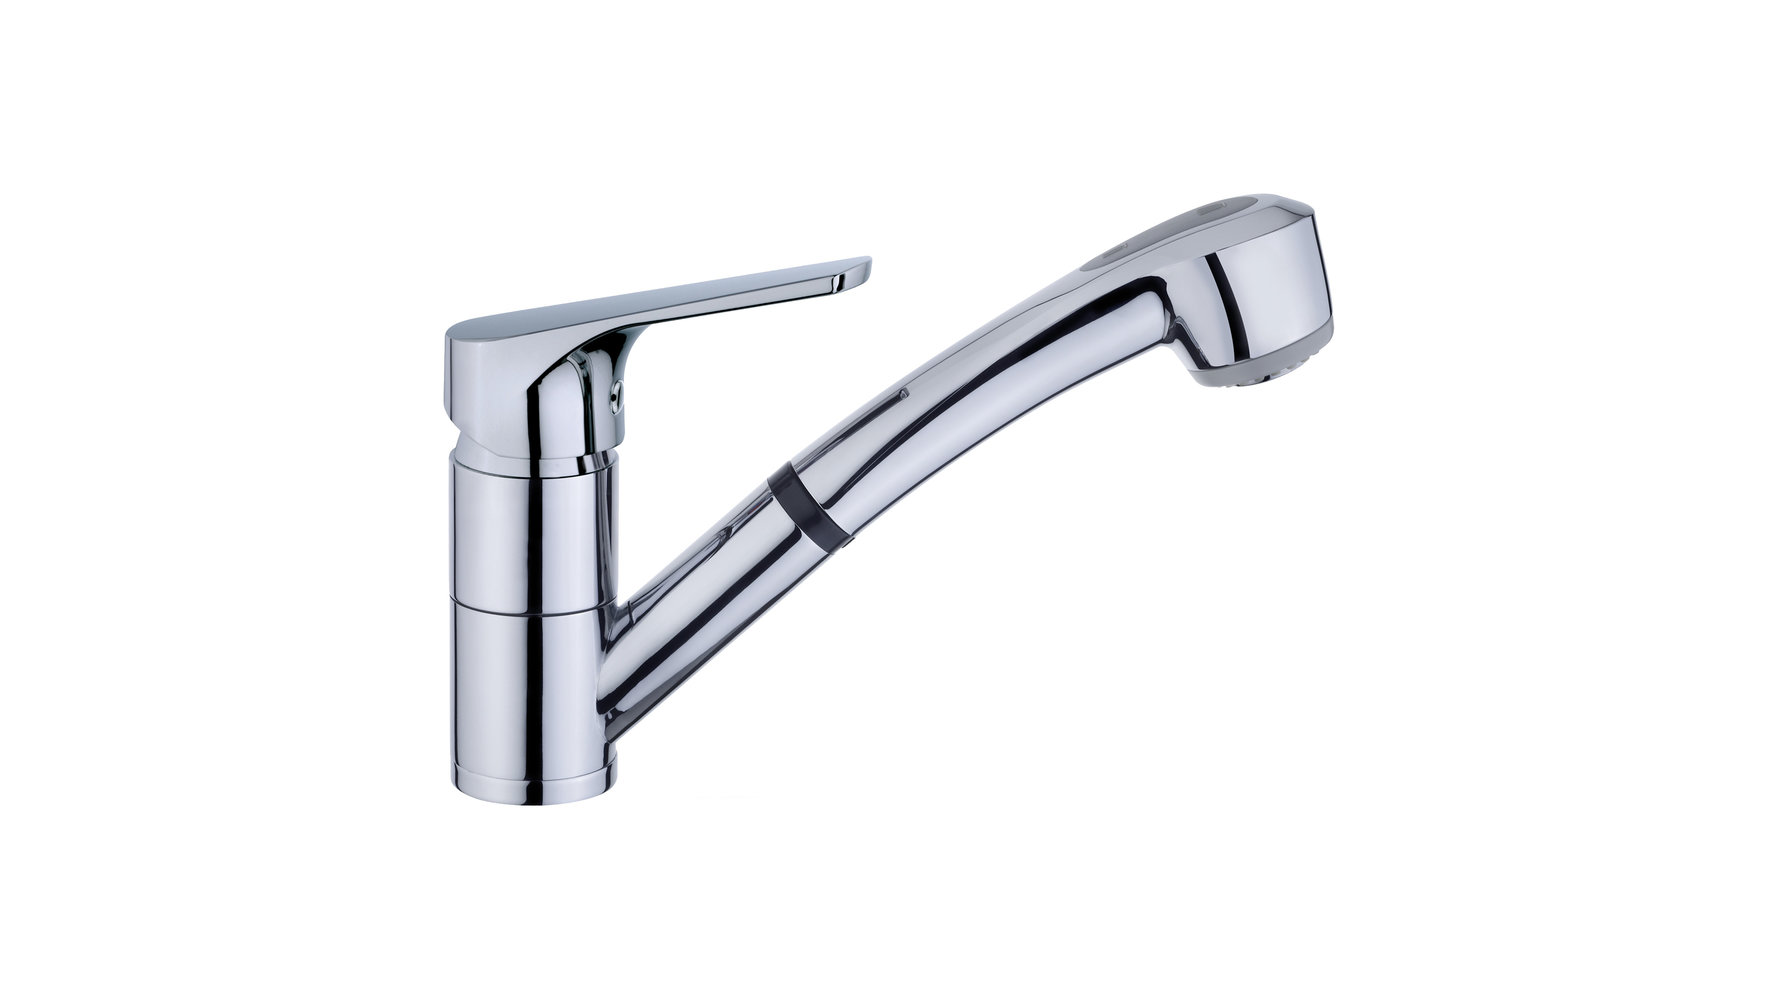 Kitchen faucet spout mixer under molten gitatorio and extractable handle 2 functions